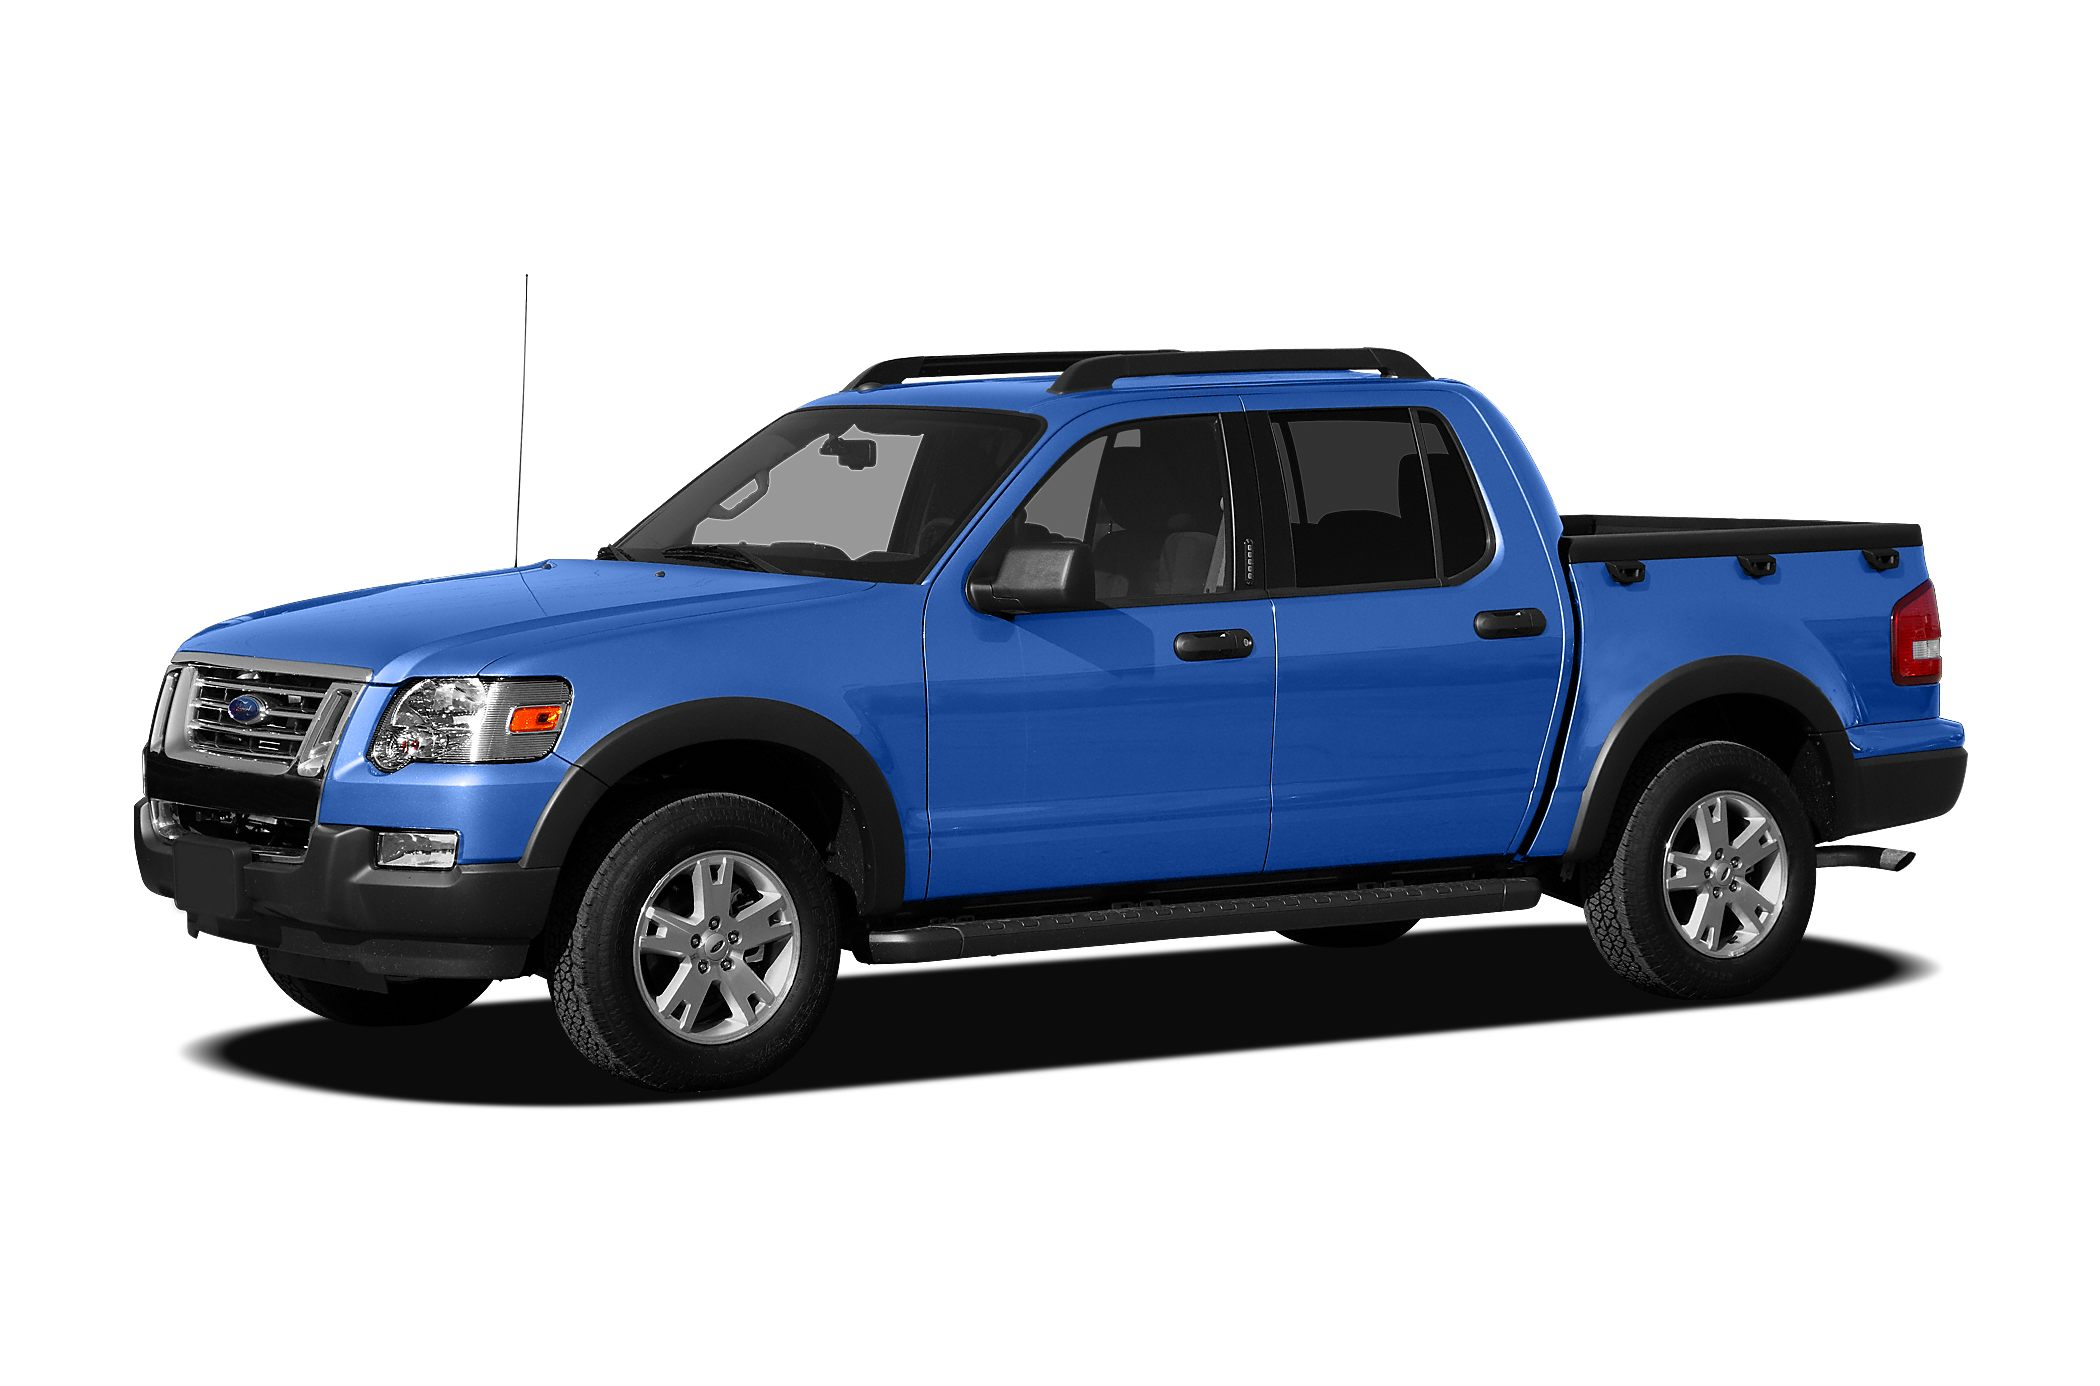 ford explorer sport trac news photos and buying information autoblog. Black Bedroom Furniture Sets. Home Design Ideas